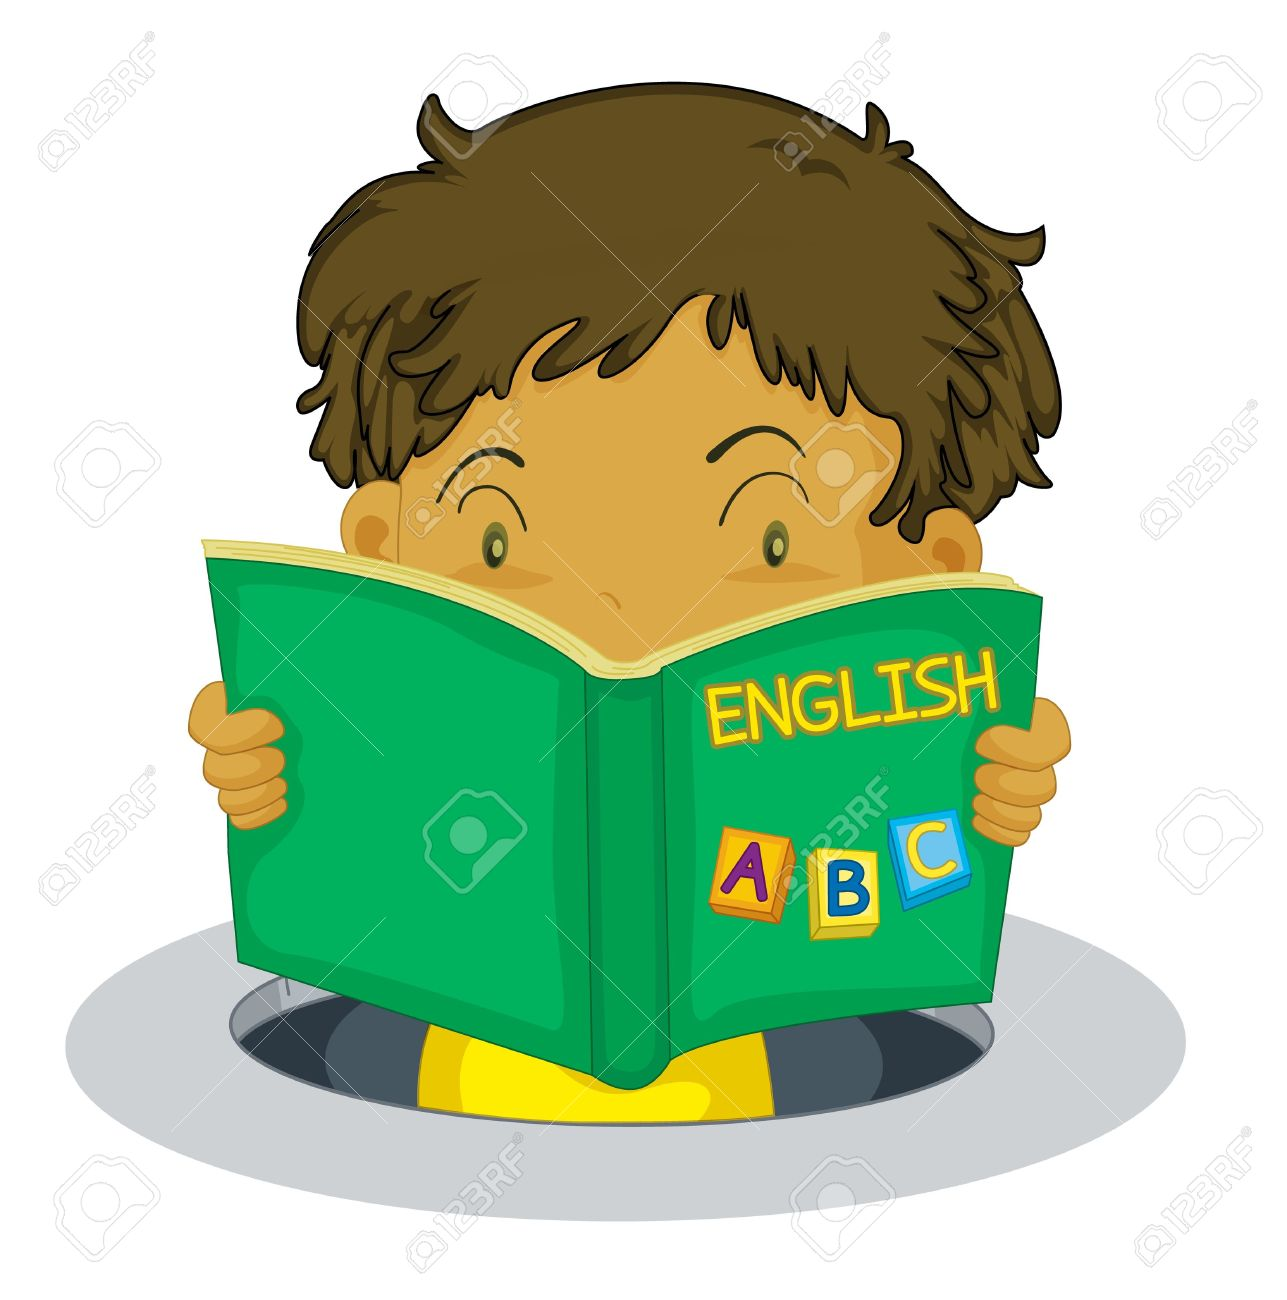 English Learning Books Clipart Clipground